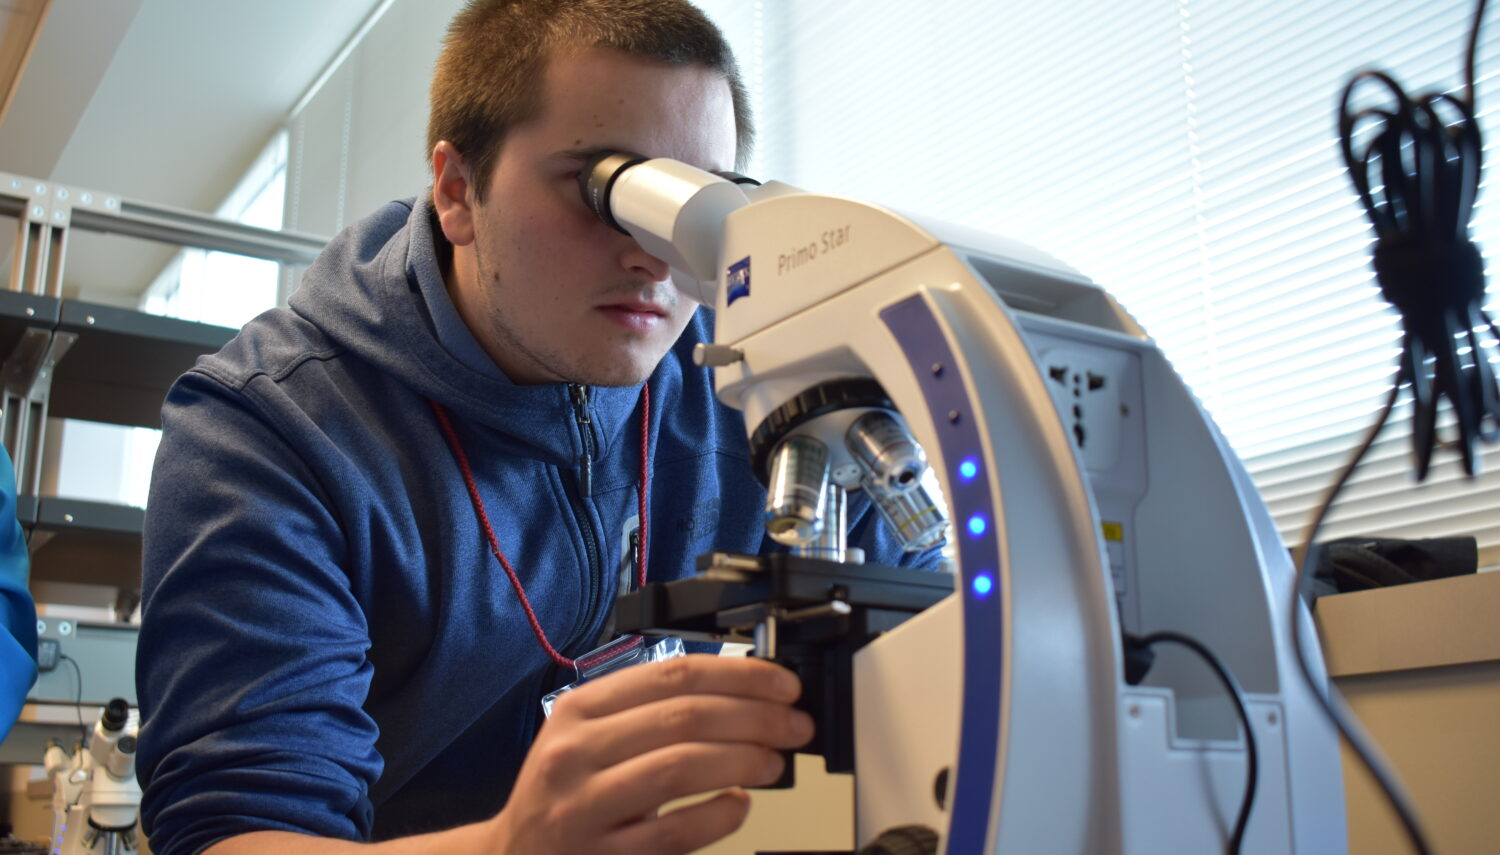 A young man with short-cropped hair wearing a blue sweatshirt looks into a microscope.